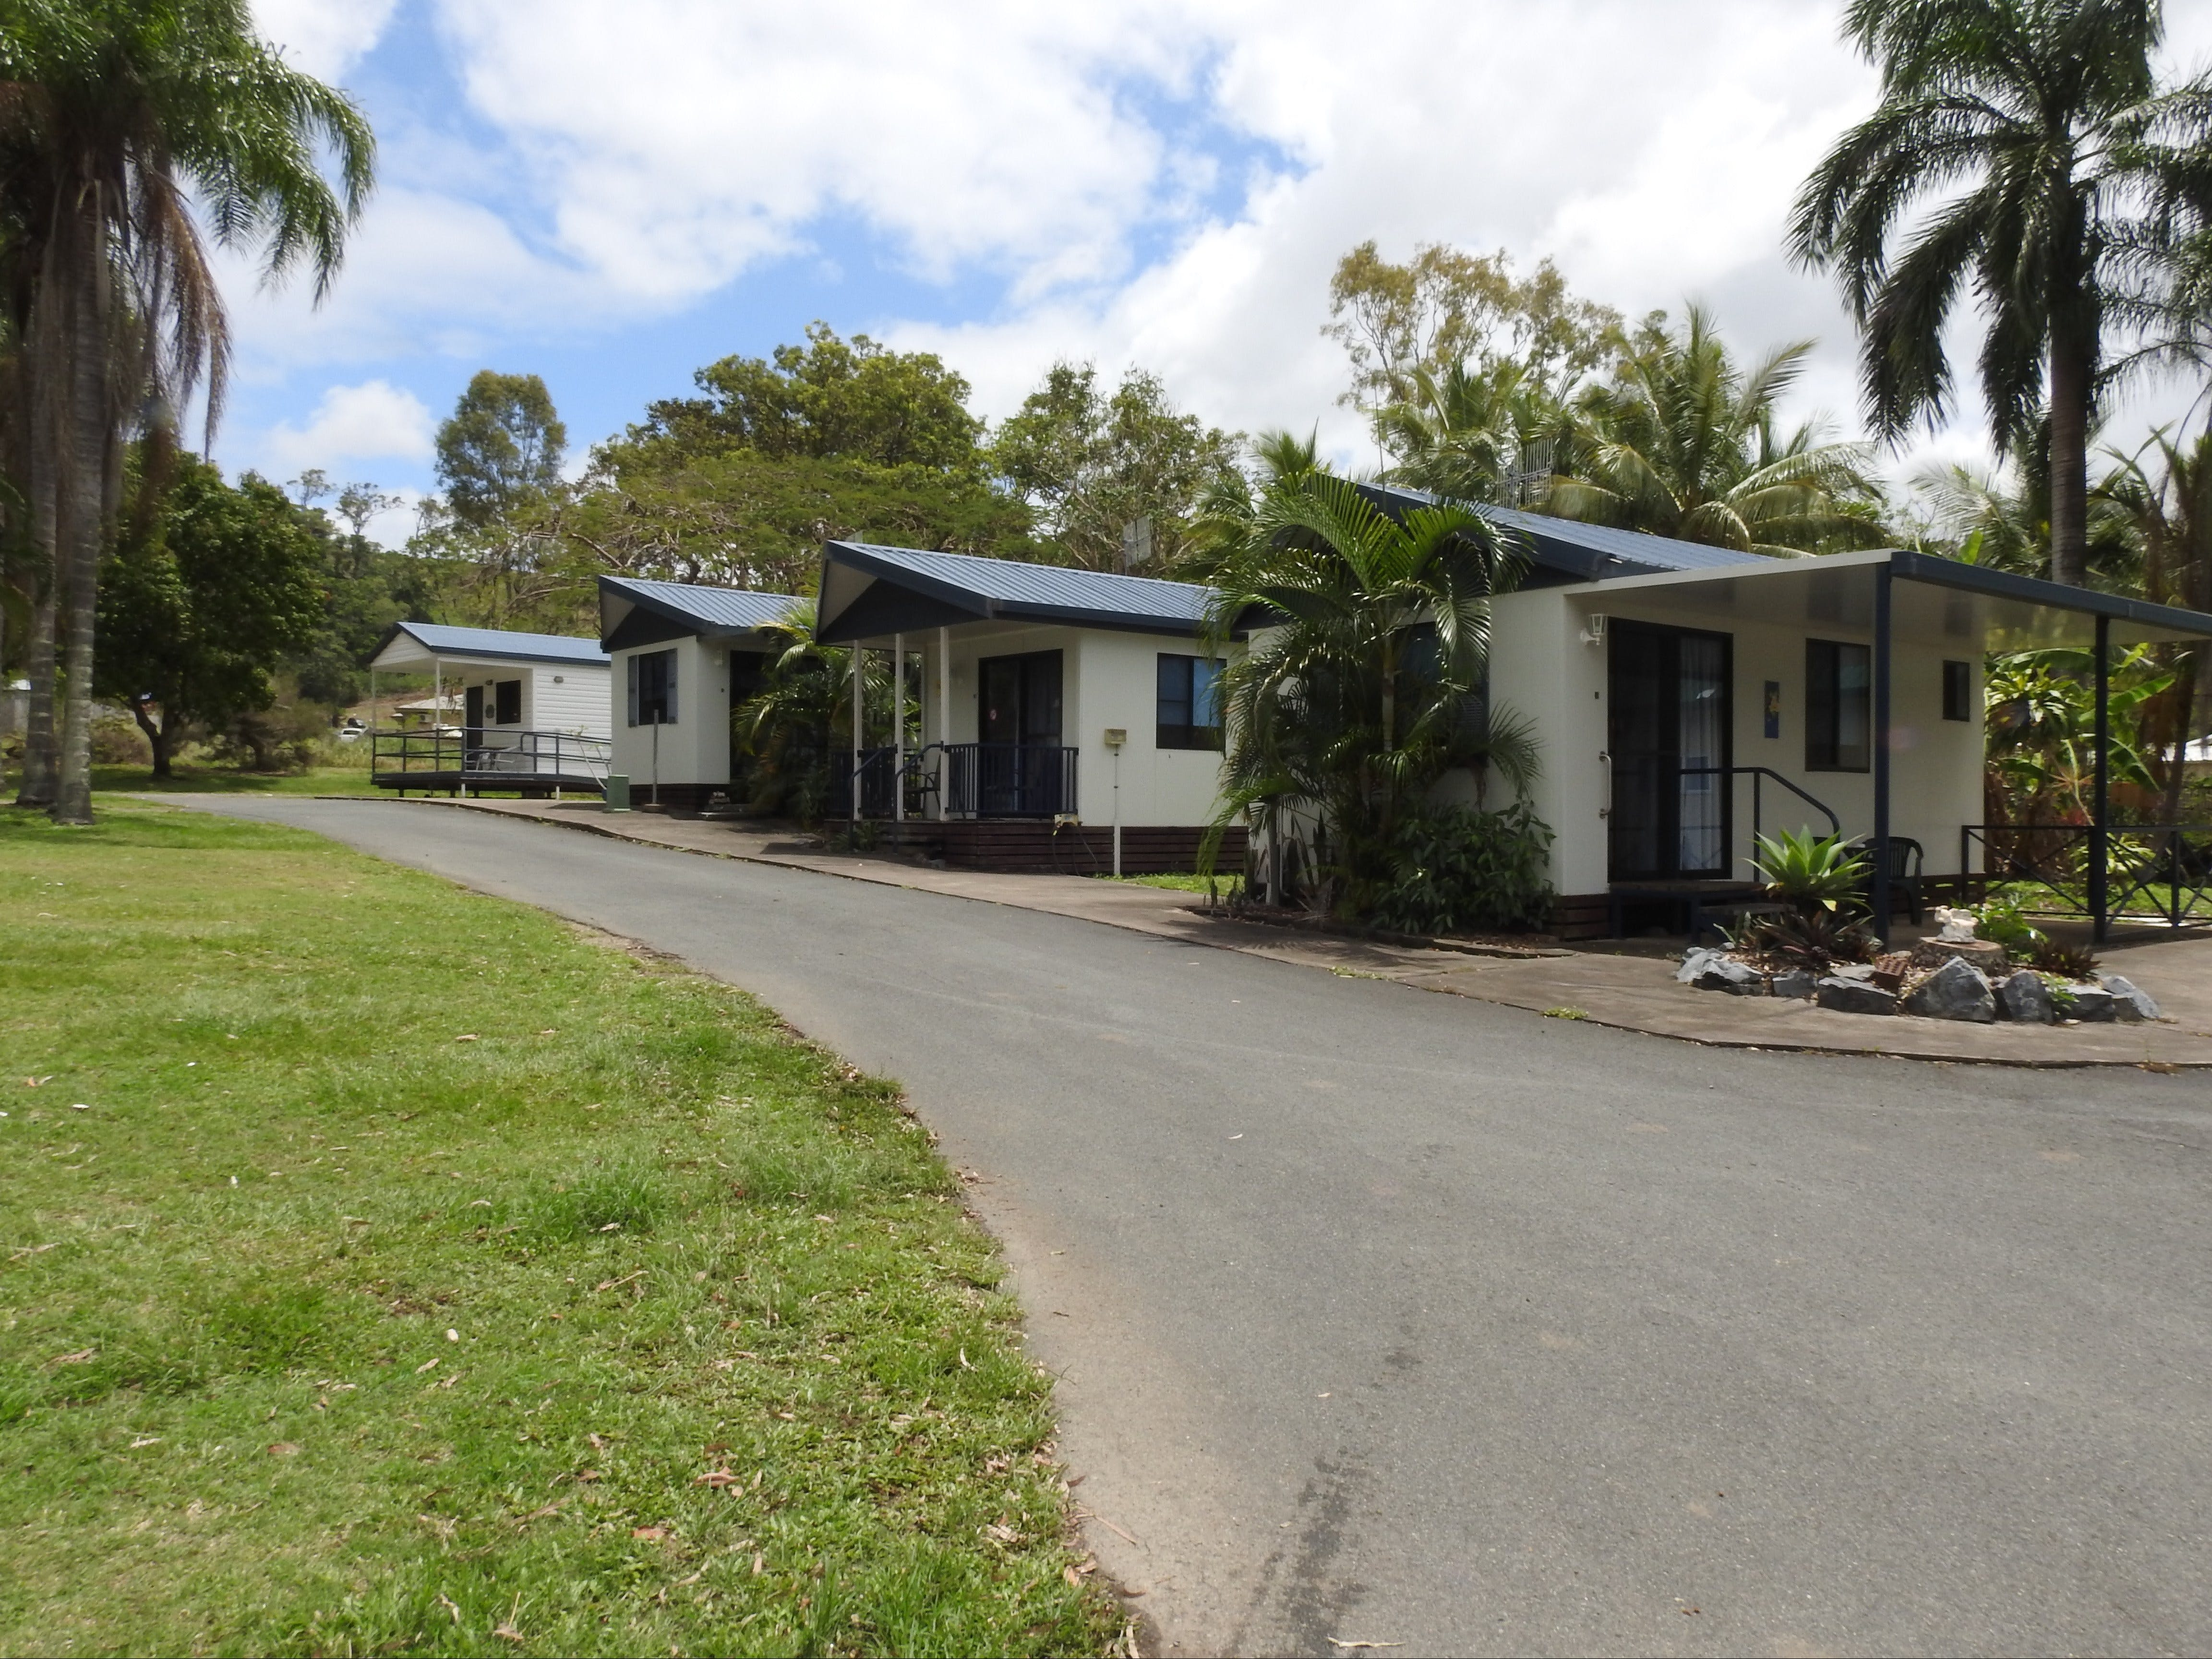 Tropicana Caravan Park Sarina - Dalby Accommodation